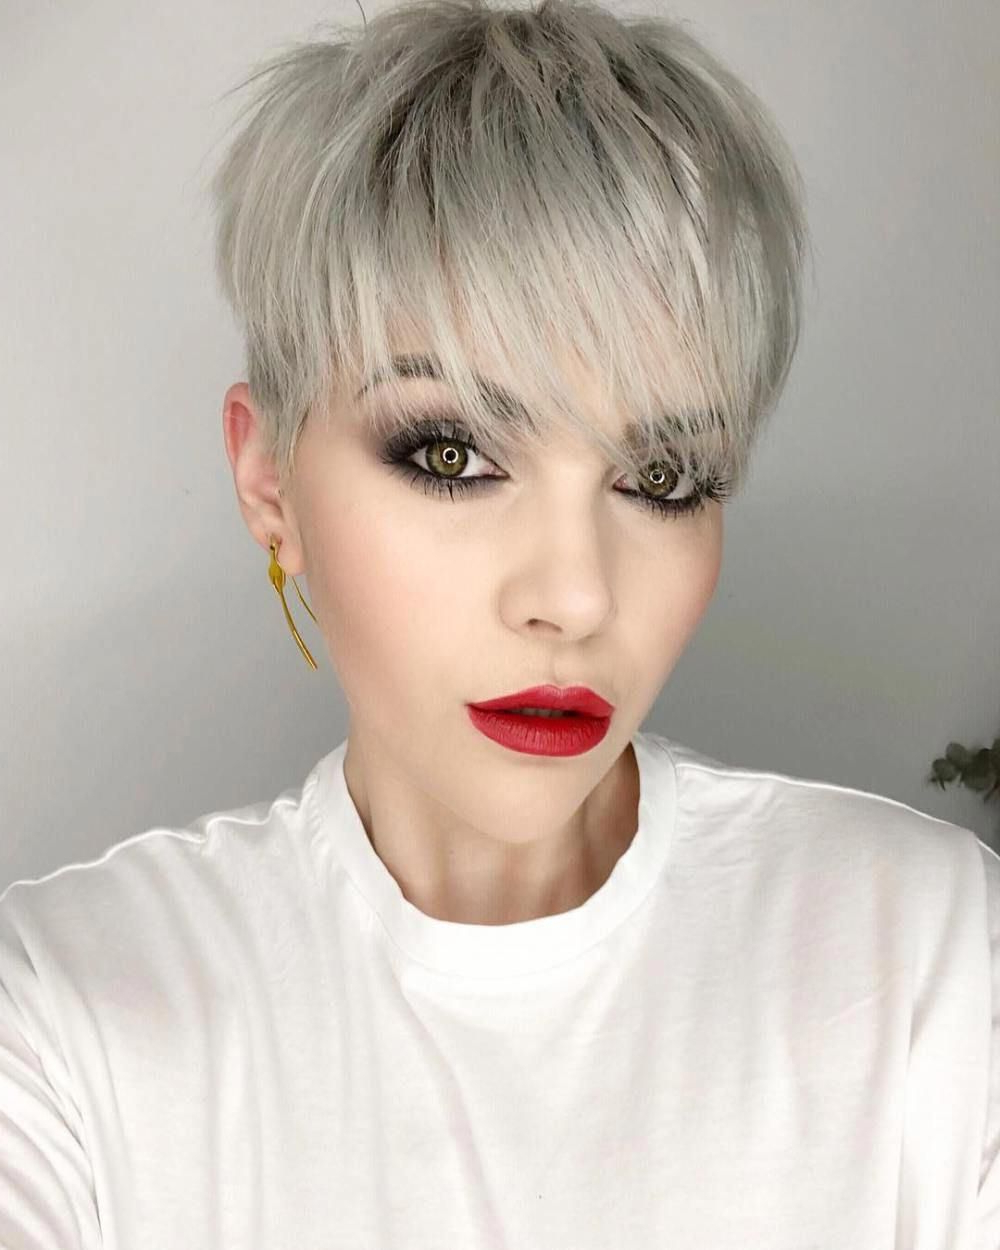 Pixie Haircuts With Bangs – 50 Terrific Tapers In 2019 With Blonde Pixie Haircuts With Curly Bangs (Gallery 3 of 20)